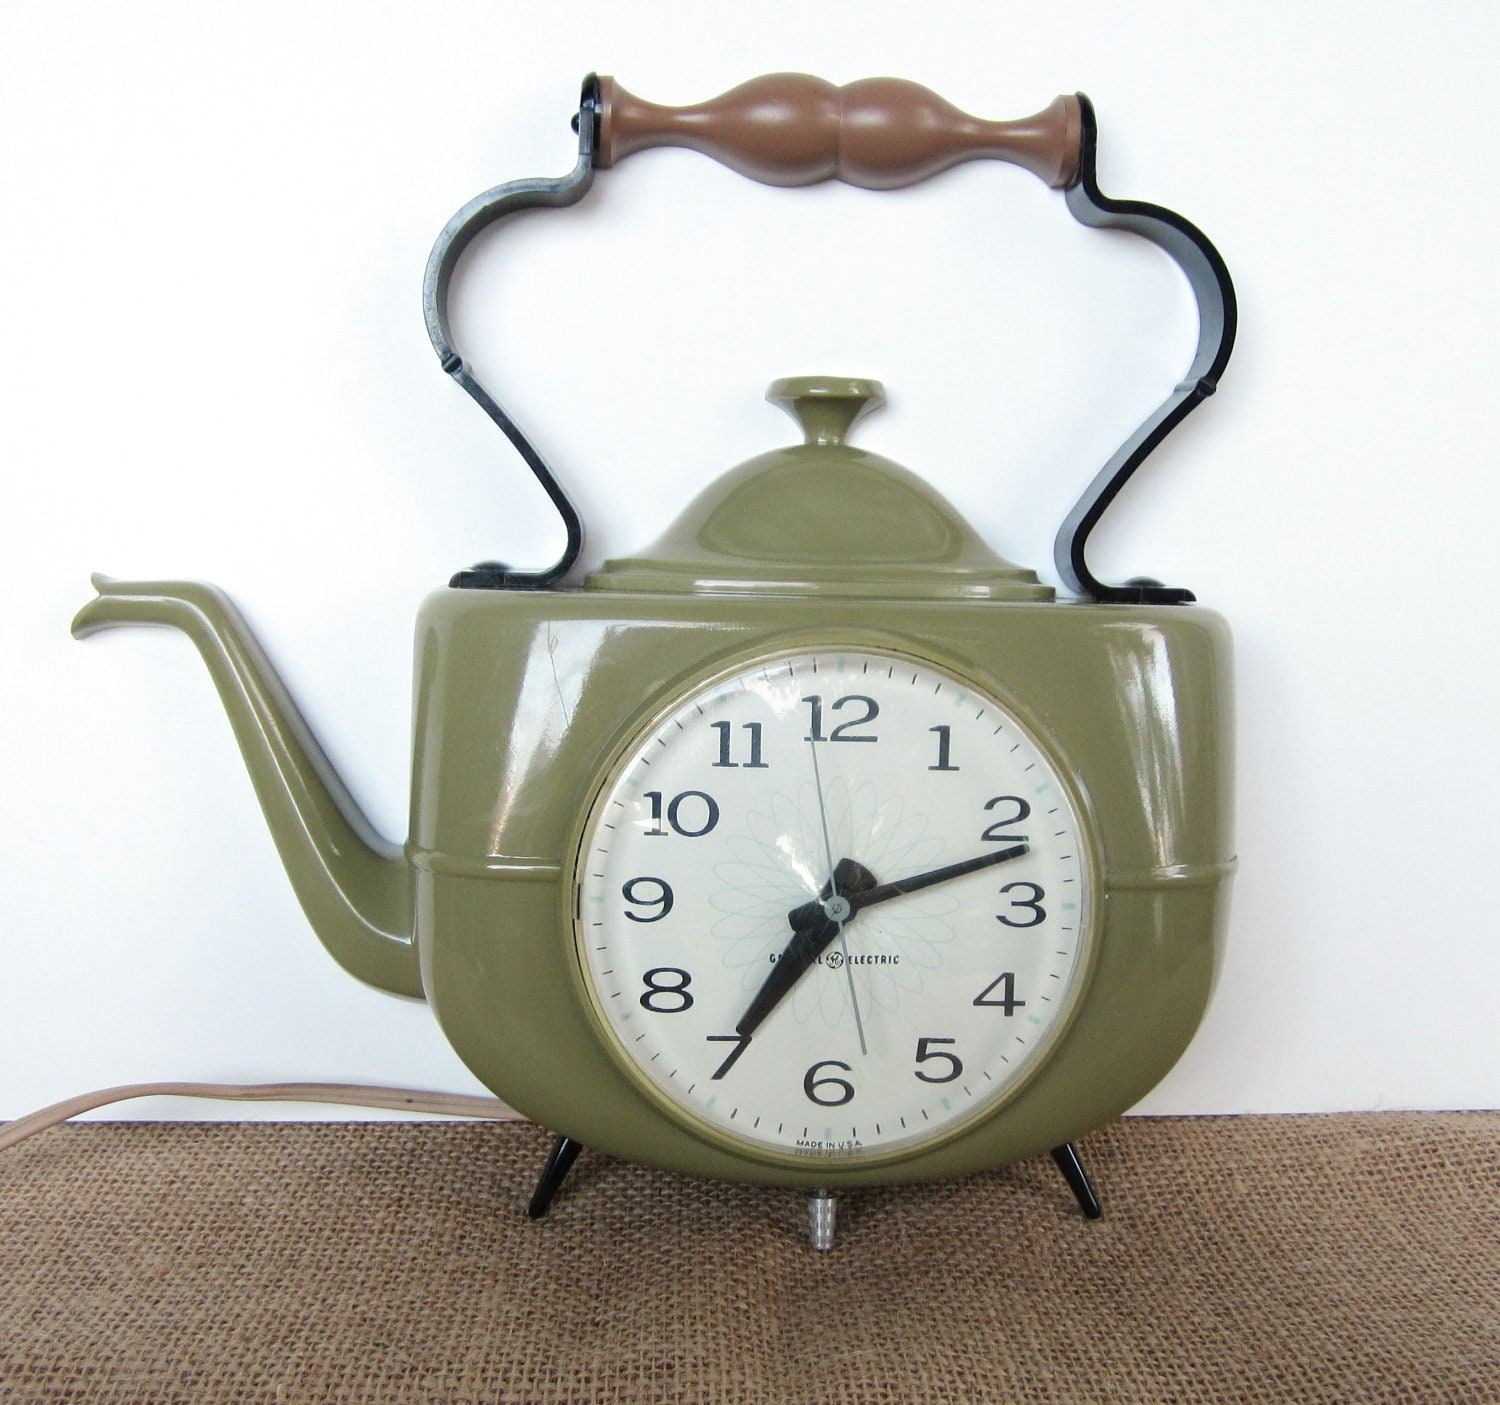 Retro Electric Kitchen Wall Clocks: Retro General Electric Wall Clock Teapot Or Tea Kettle